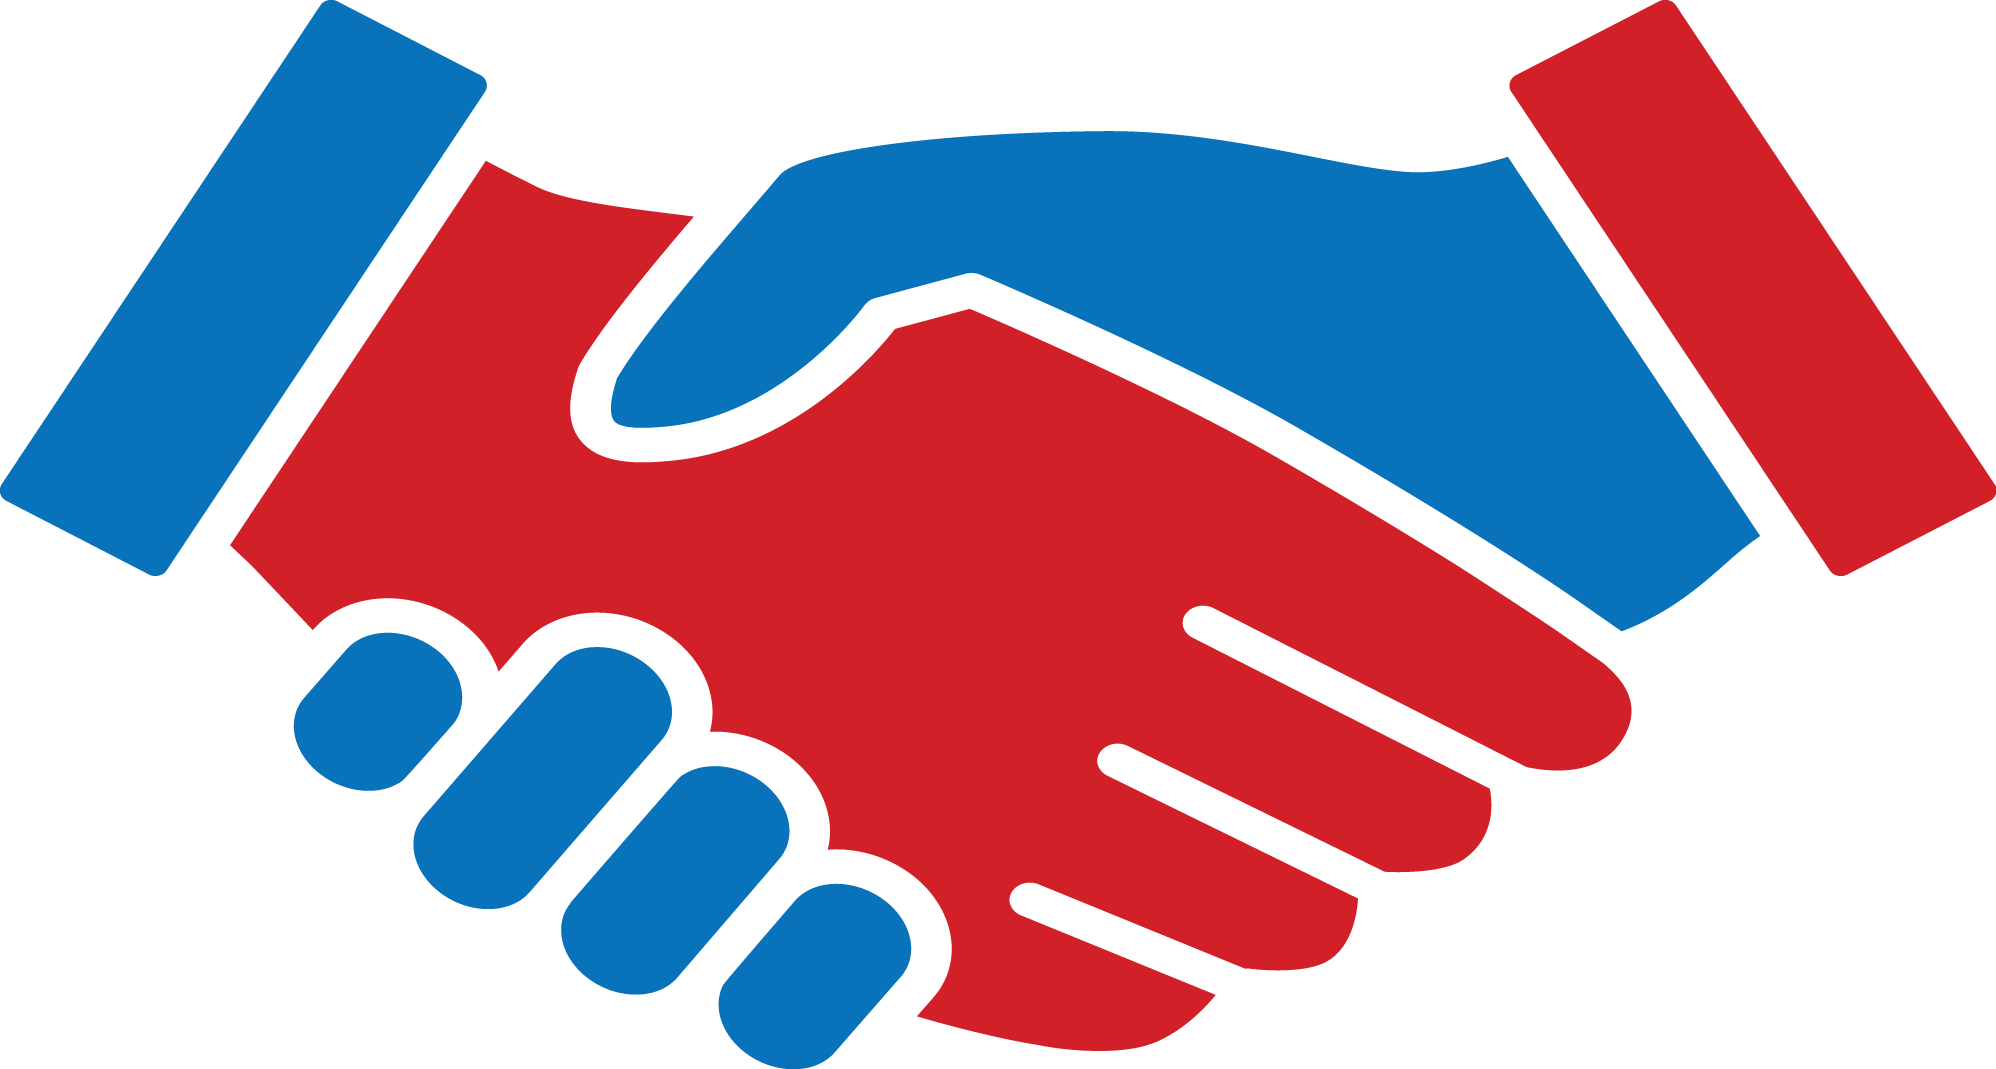 Public partnership connect america. Handshake clipart integrity